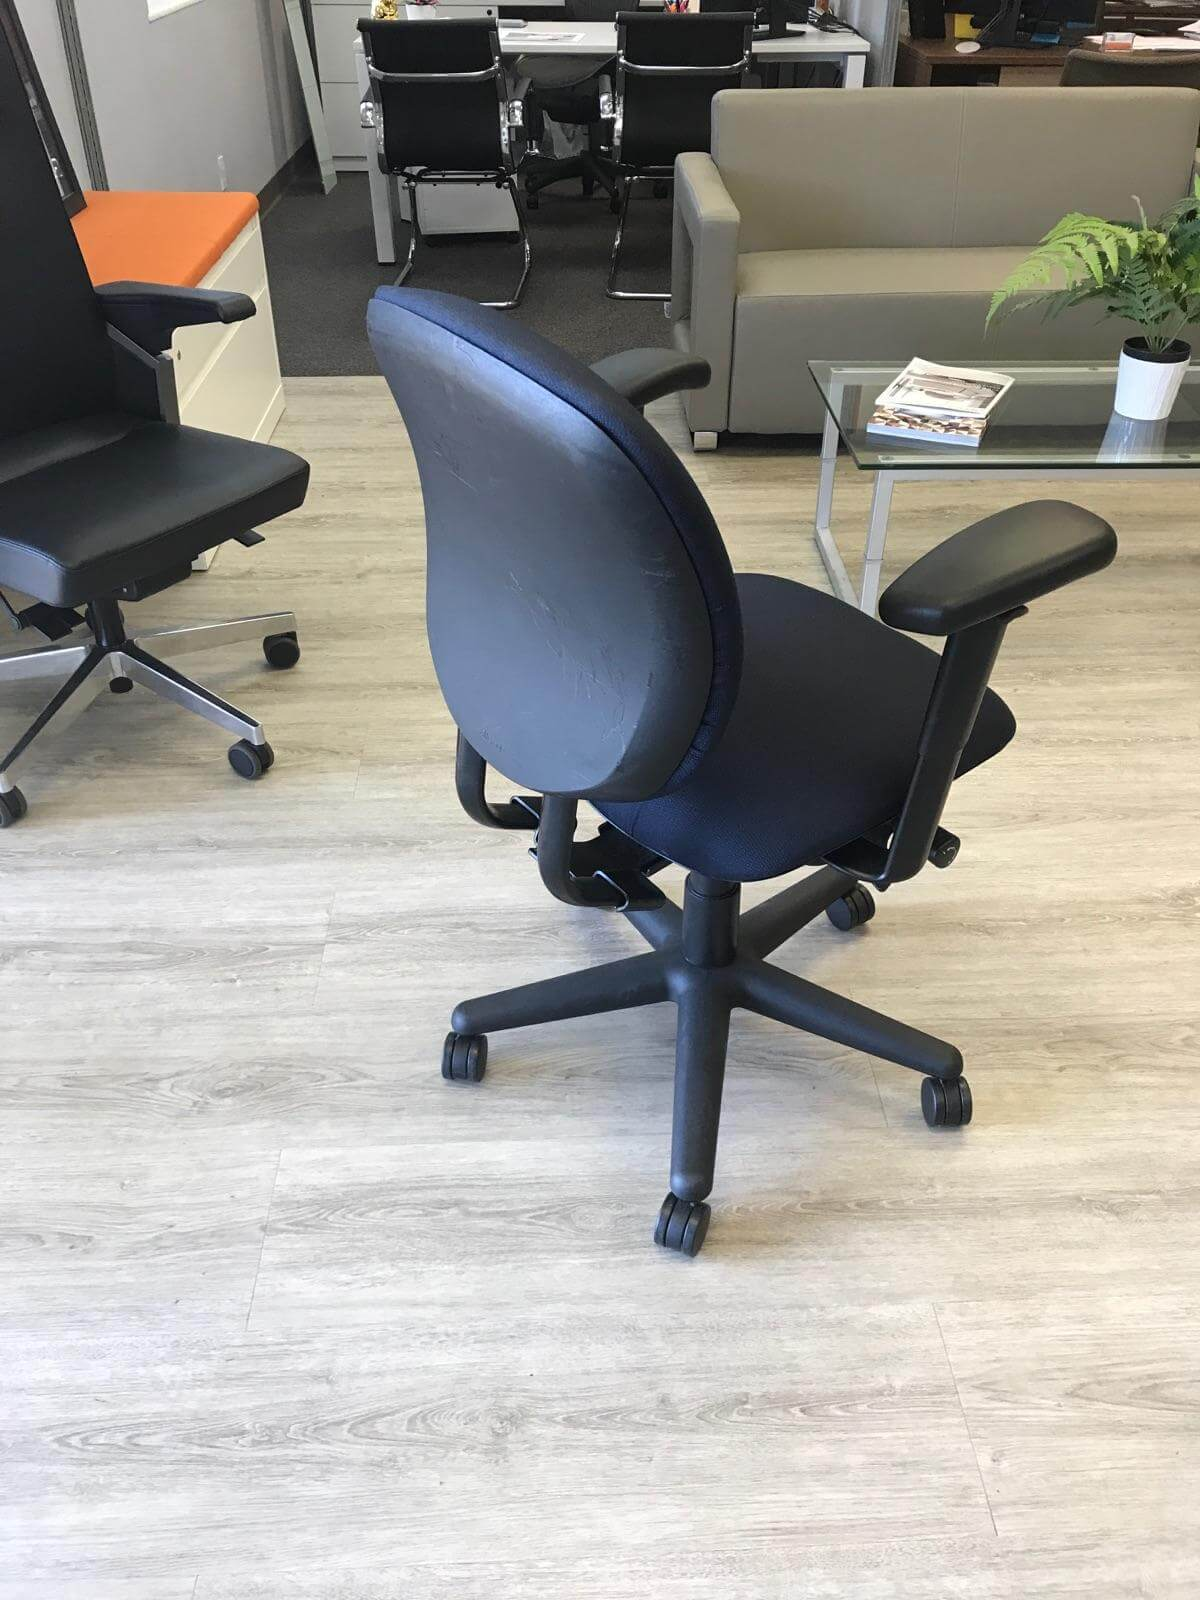 allsteel office chair desk wheel replacement trooper chairs second hand used